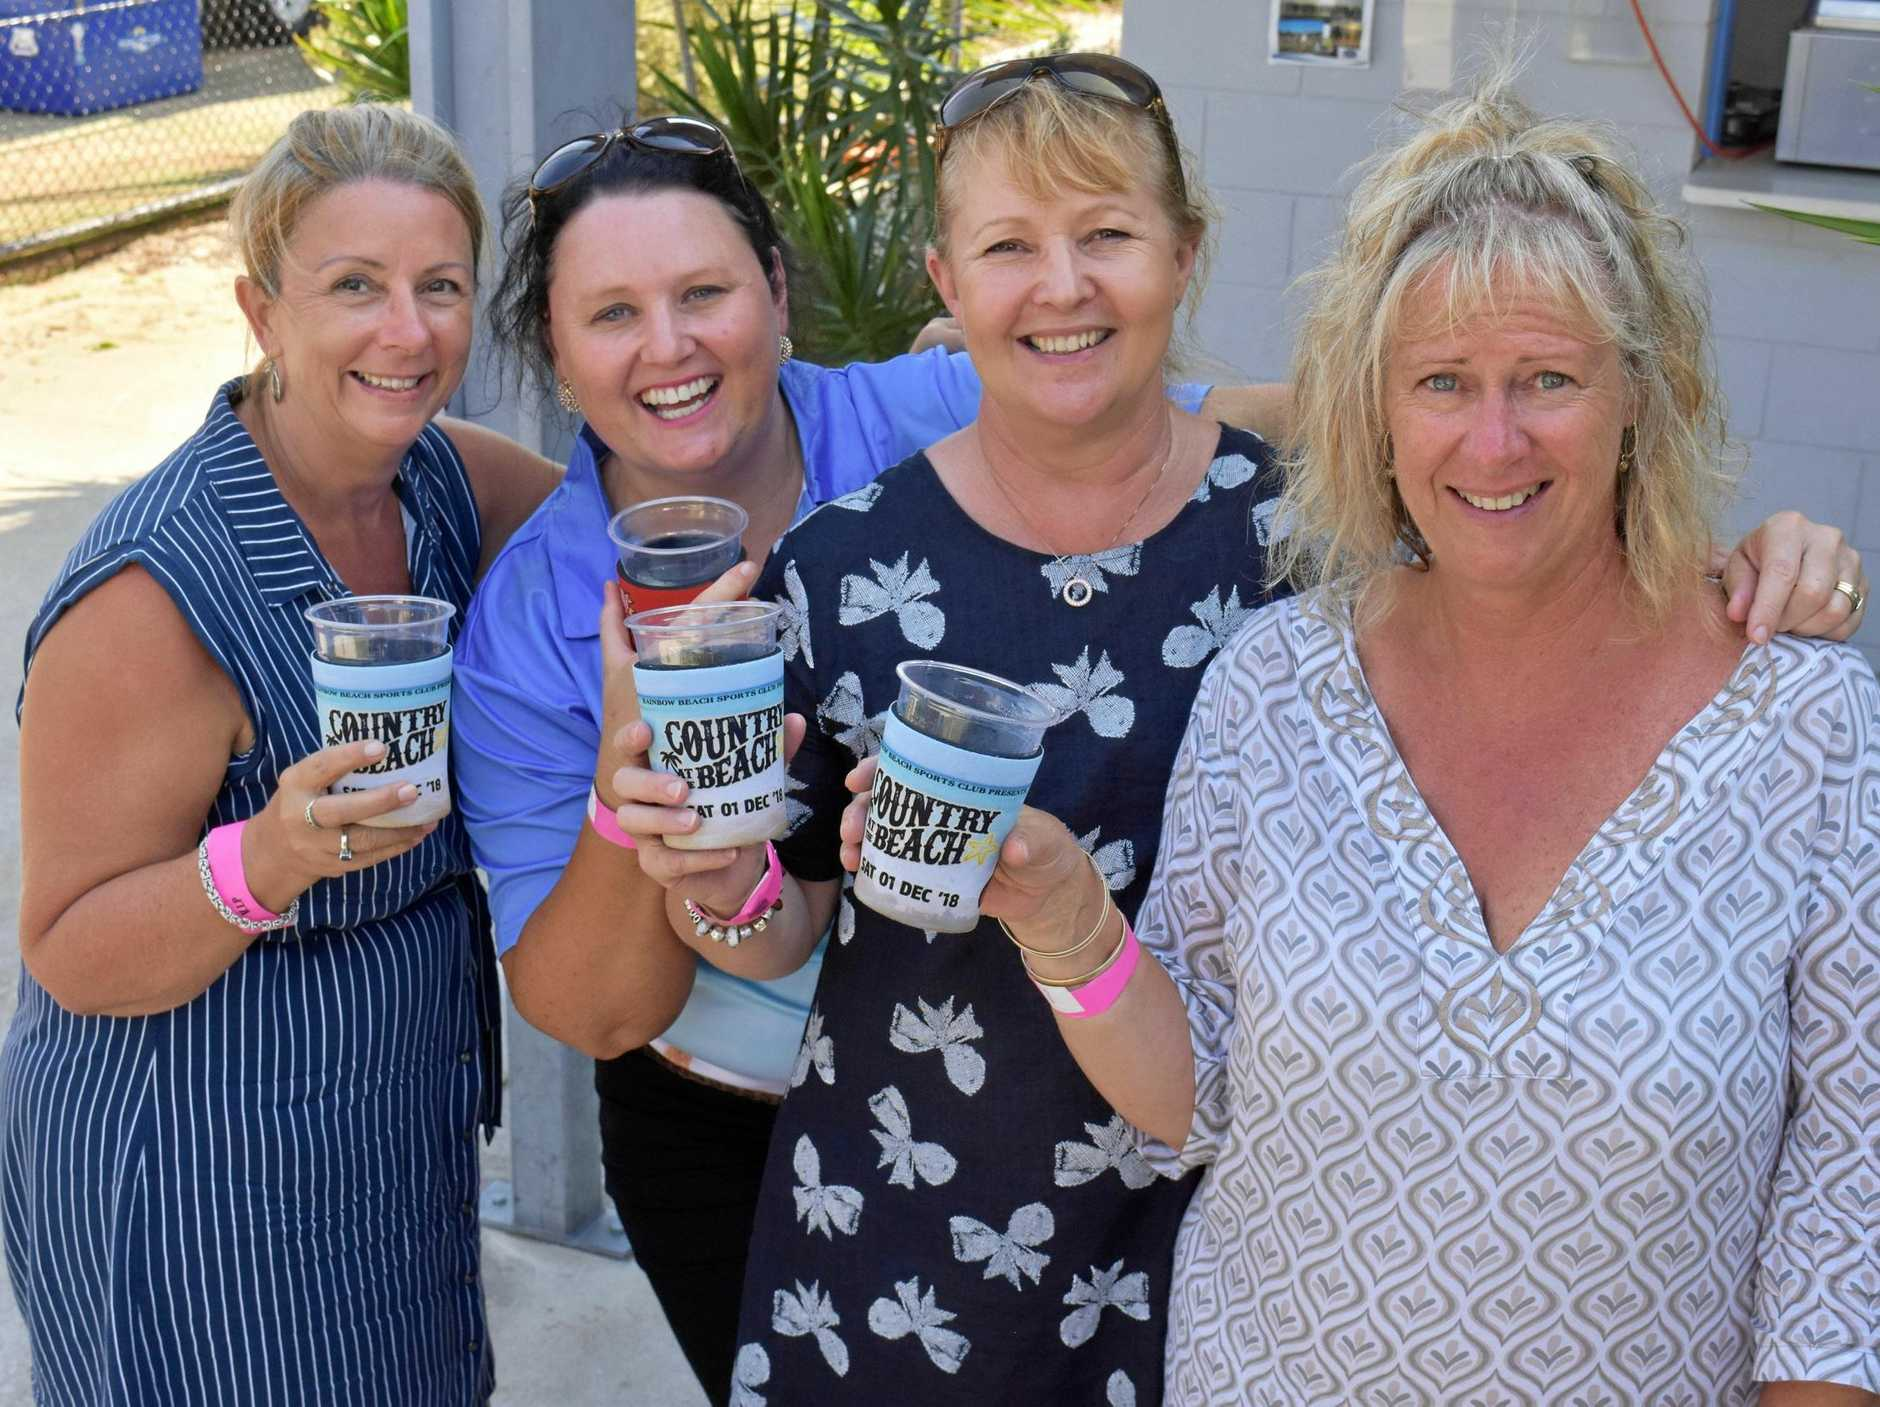 HERE TO STAY: Sue Paton, Tash Moffett, Helen Perrett and Karyn Jennings attended the 'Country at the Beach' event at Rainbow Beach.